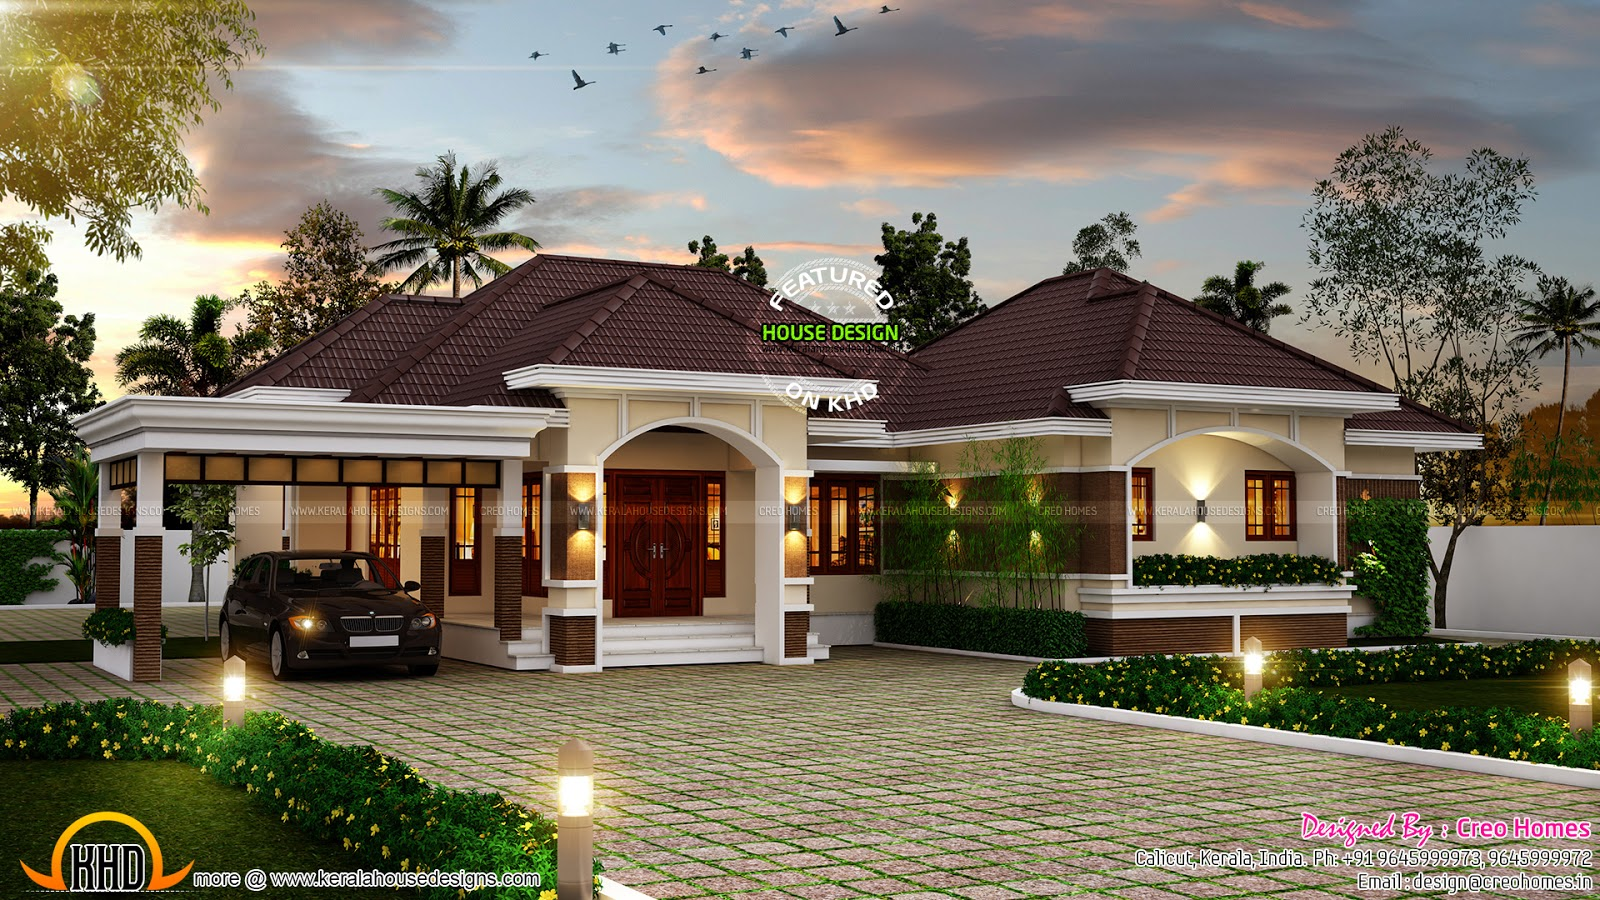 Outstanding bungalow in kerala kerala home design and for Bungalow home designs plans